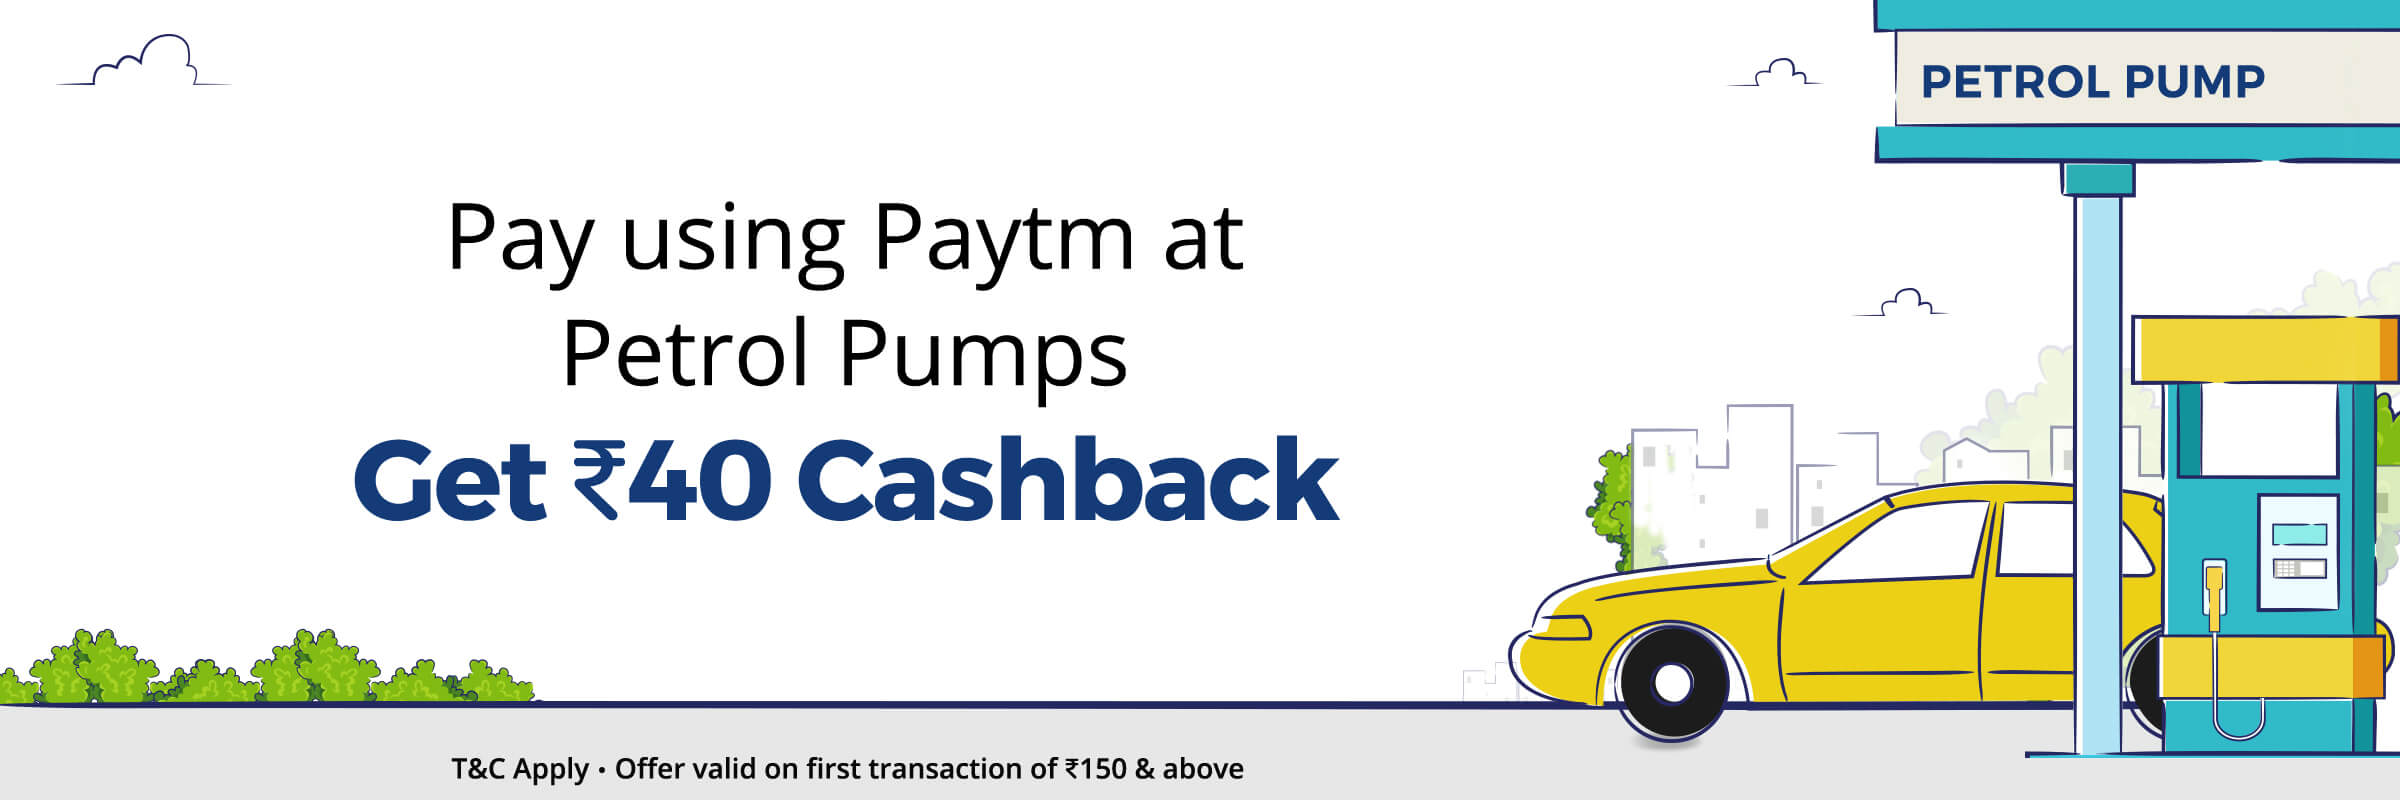 Paytm - Rs.40 Cashback at Petrol Pumps in Mumbai